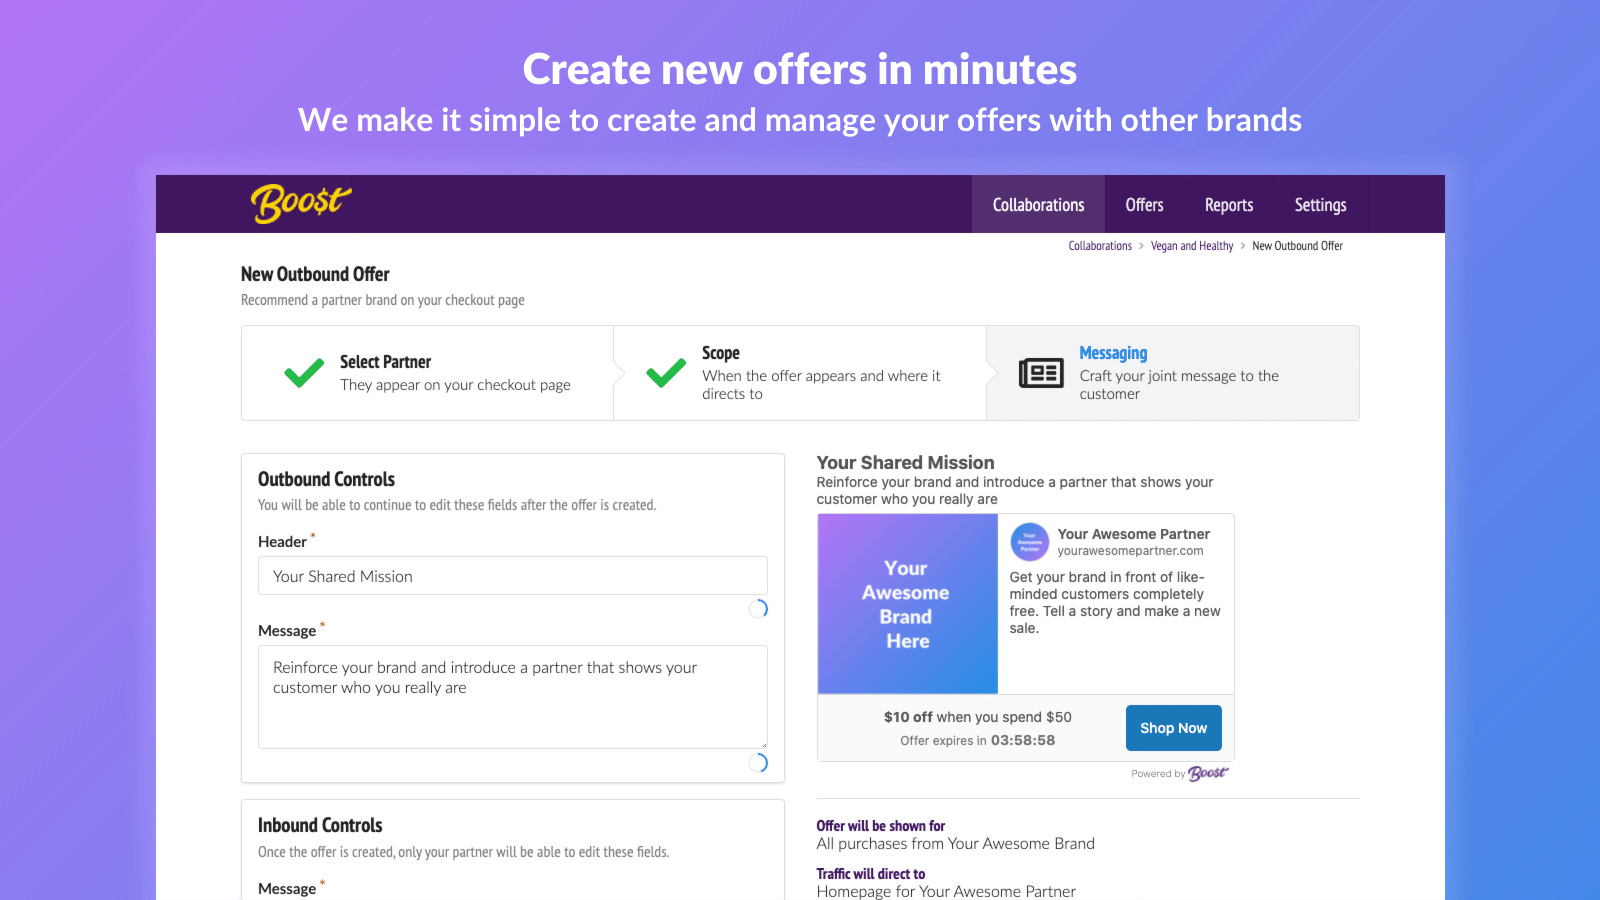 Create new offers in minutes